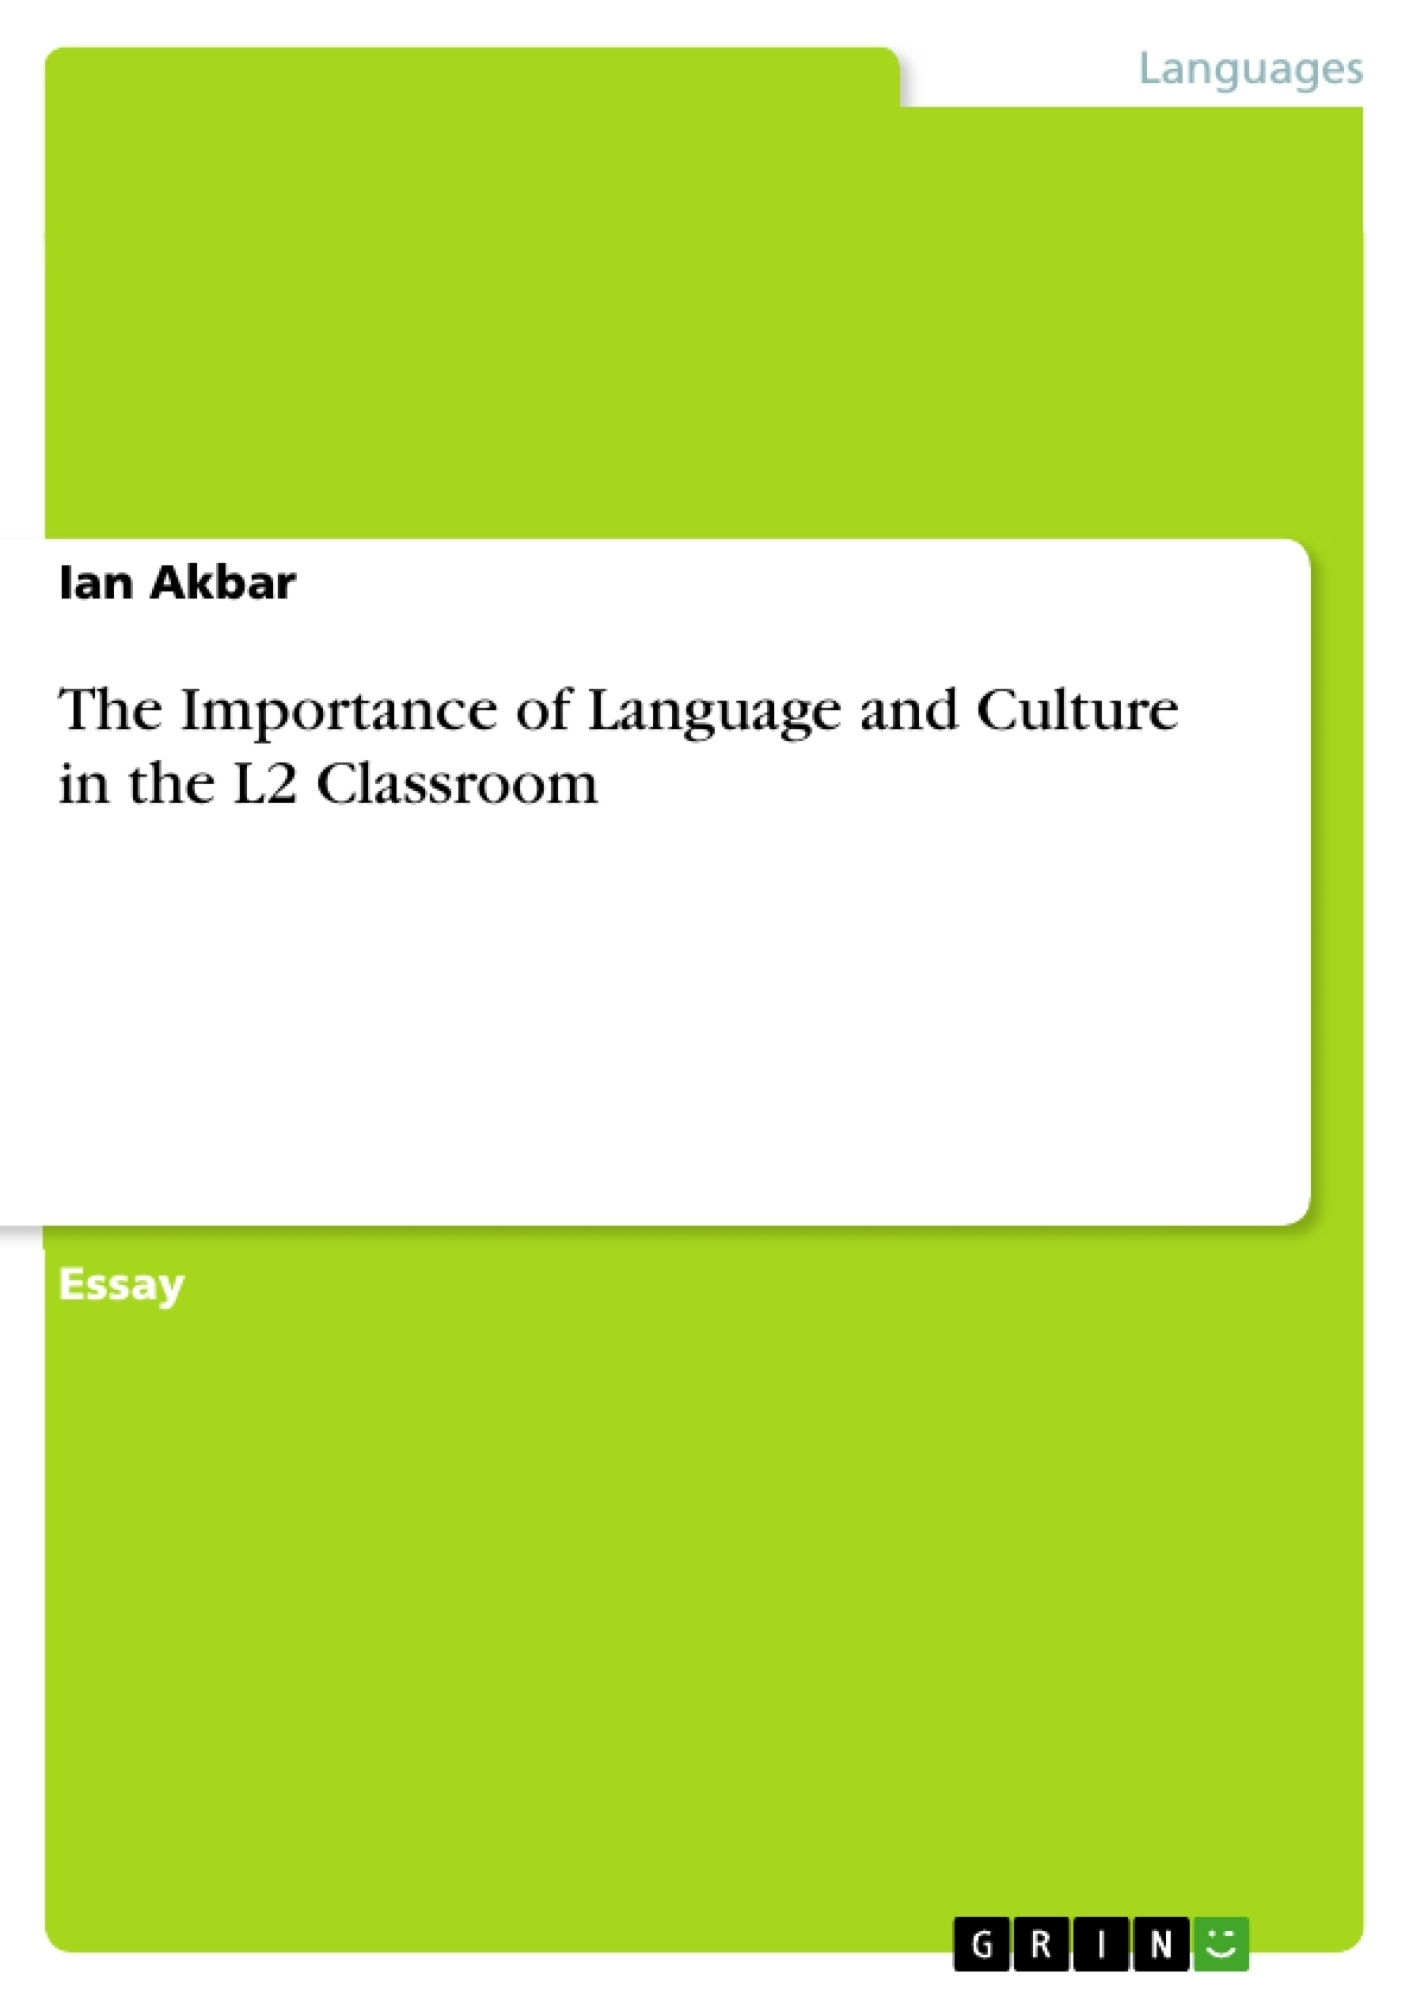 the importance of language and culture in the l classroom  upload your own papers earn money and win an iphone x